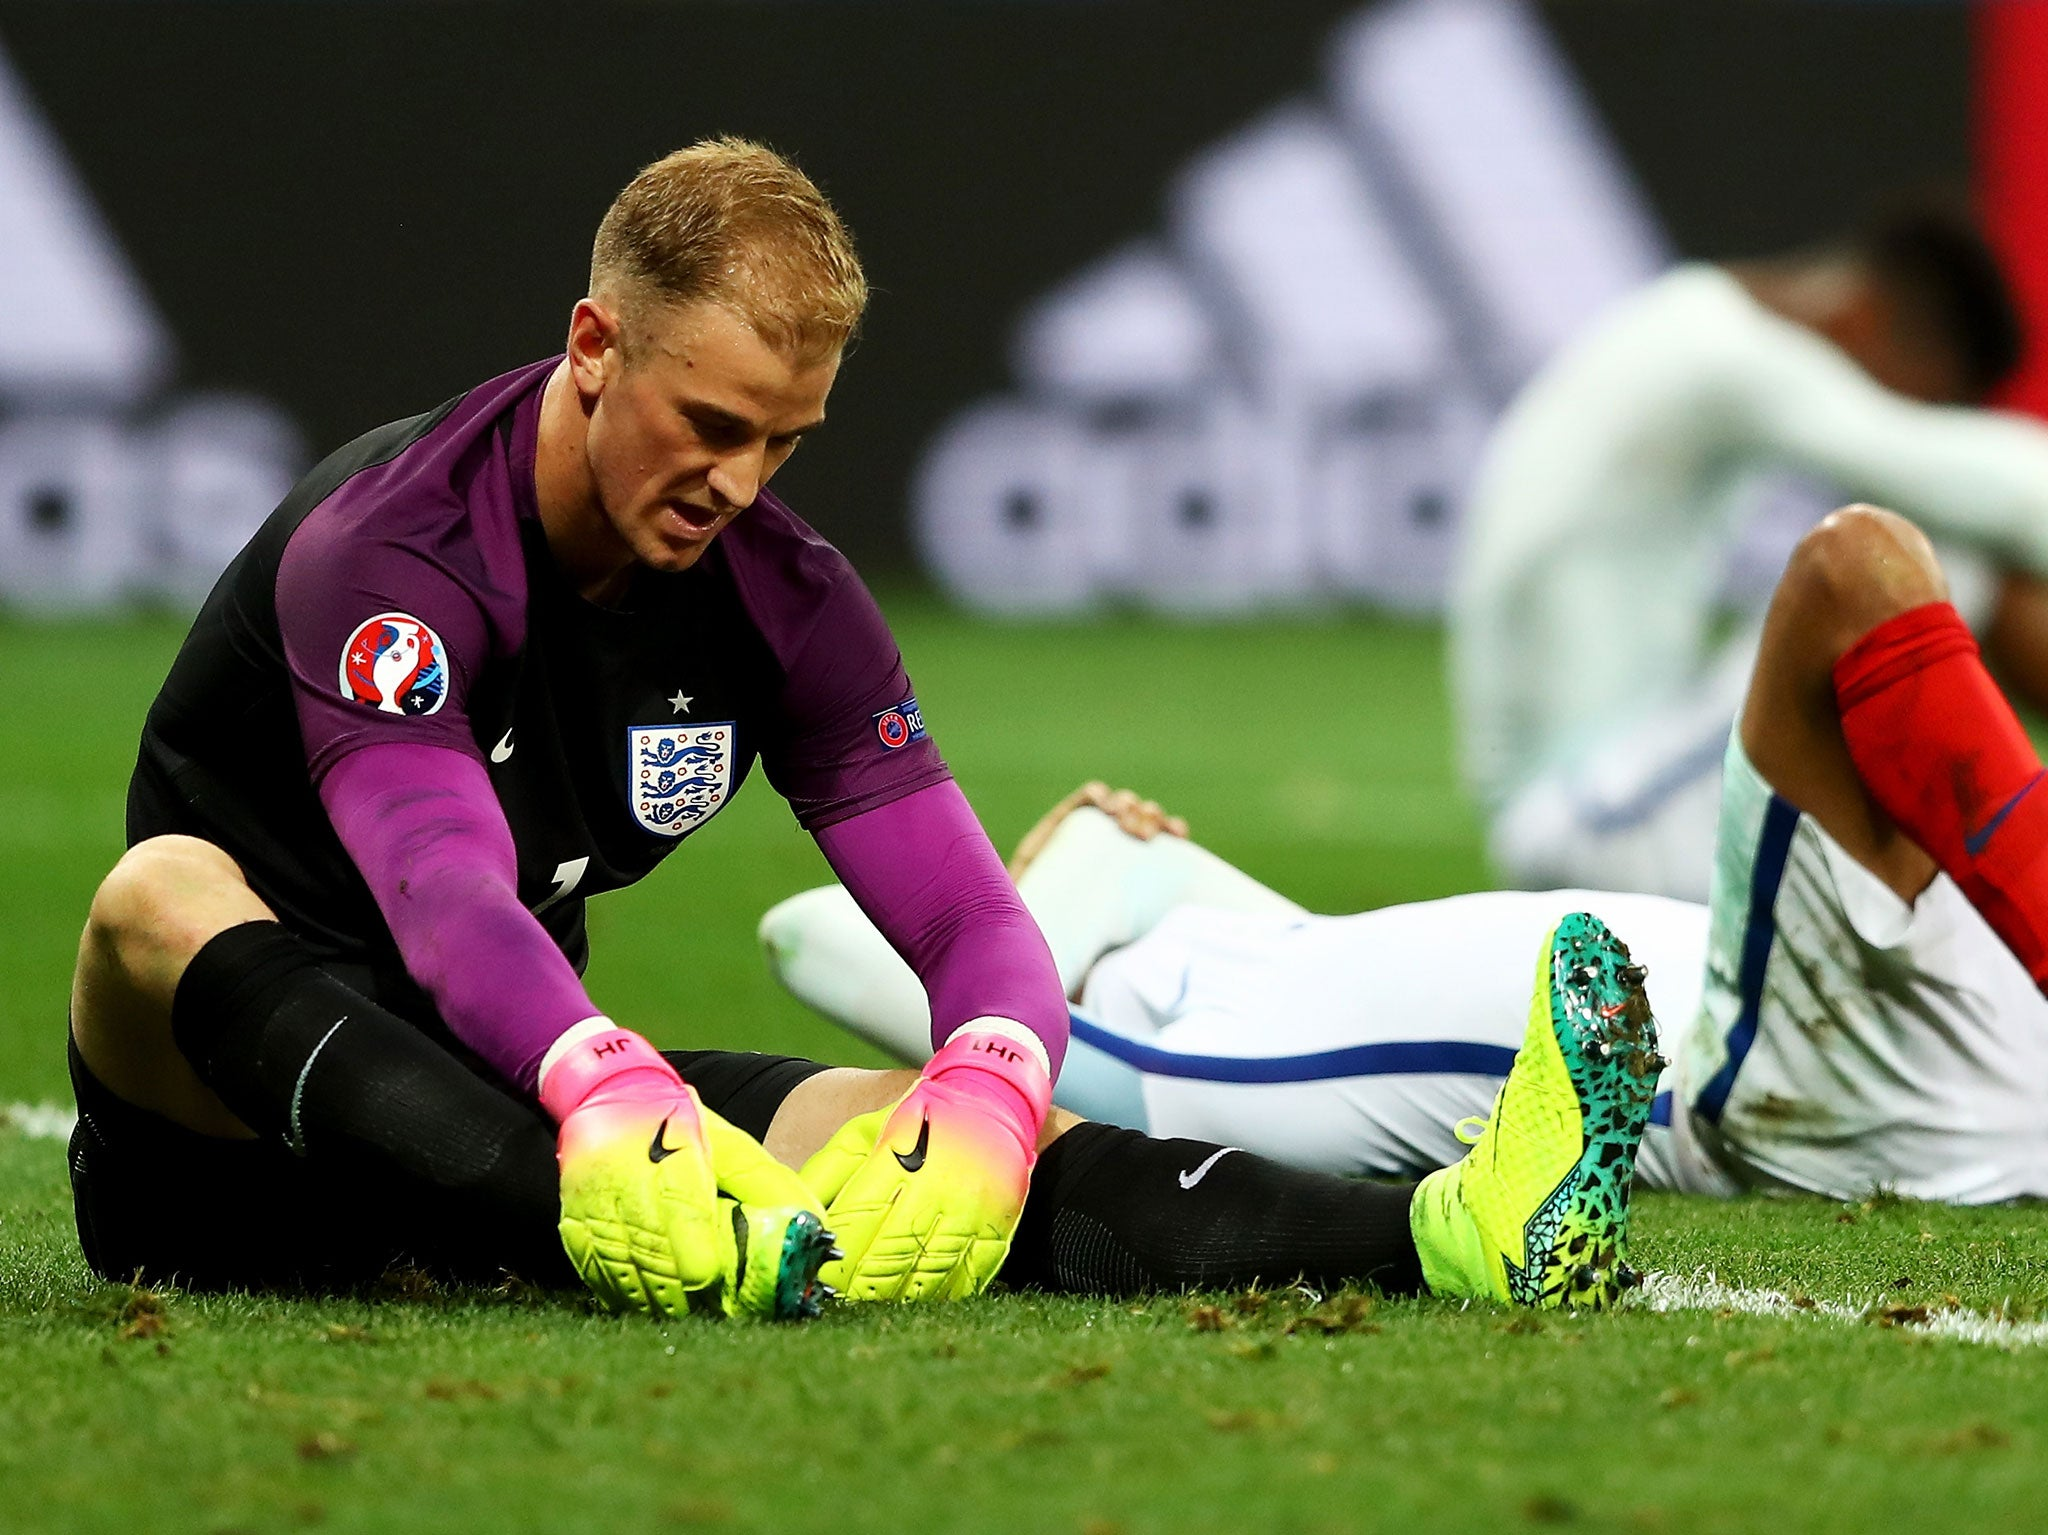 How Joe Hart grew to be e his own worst enemy at Manchester City